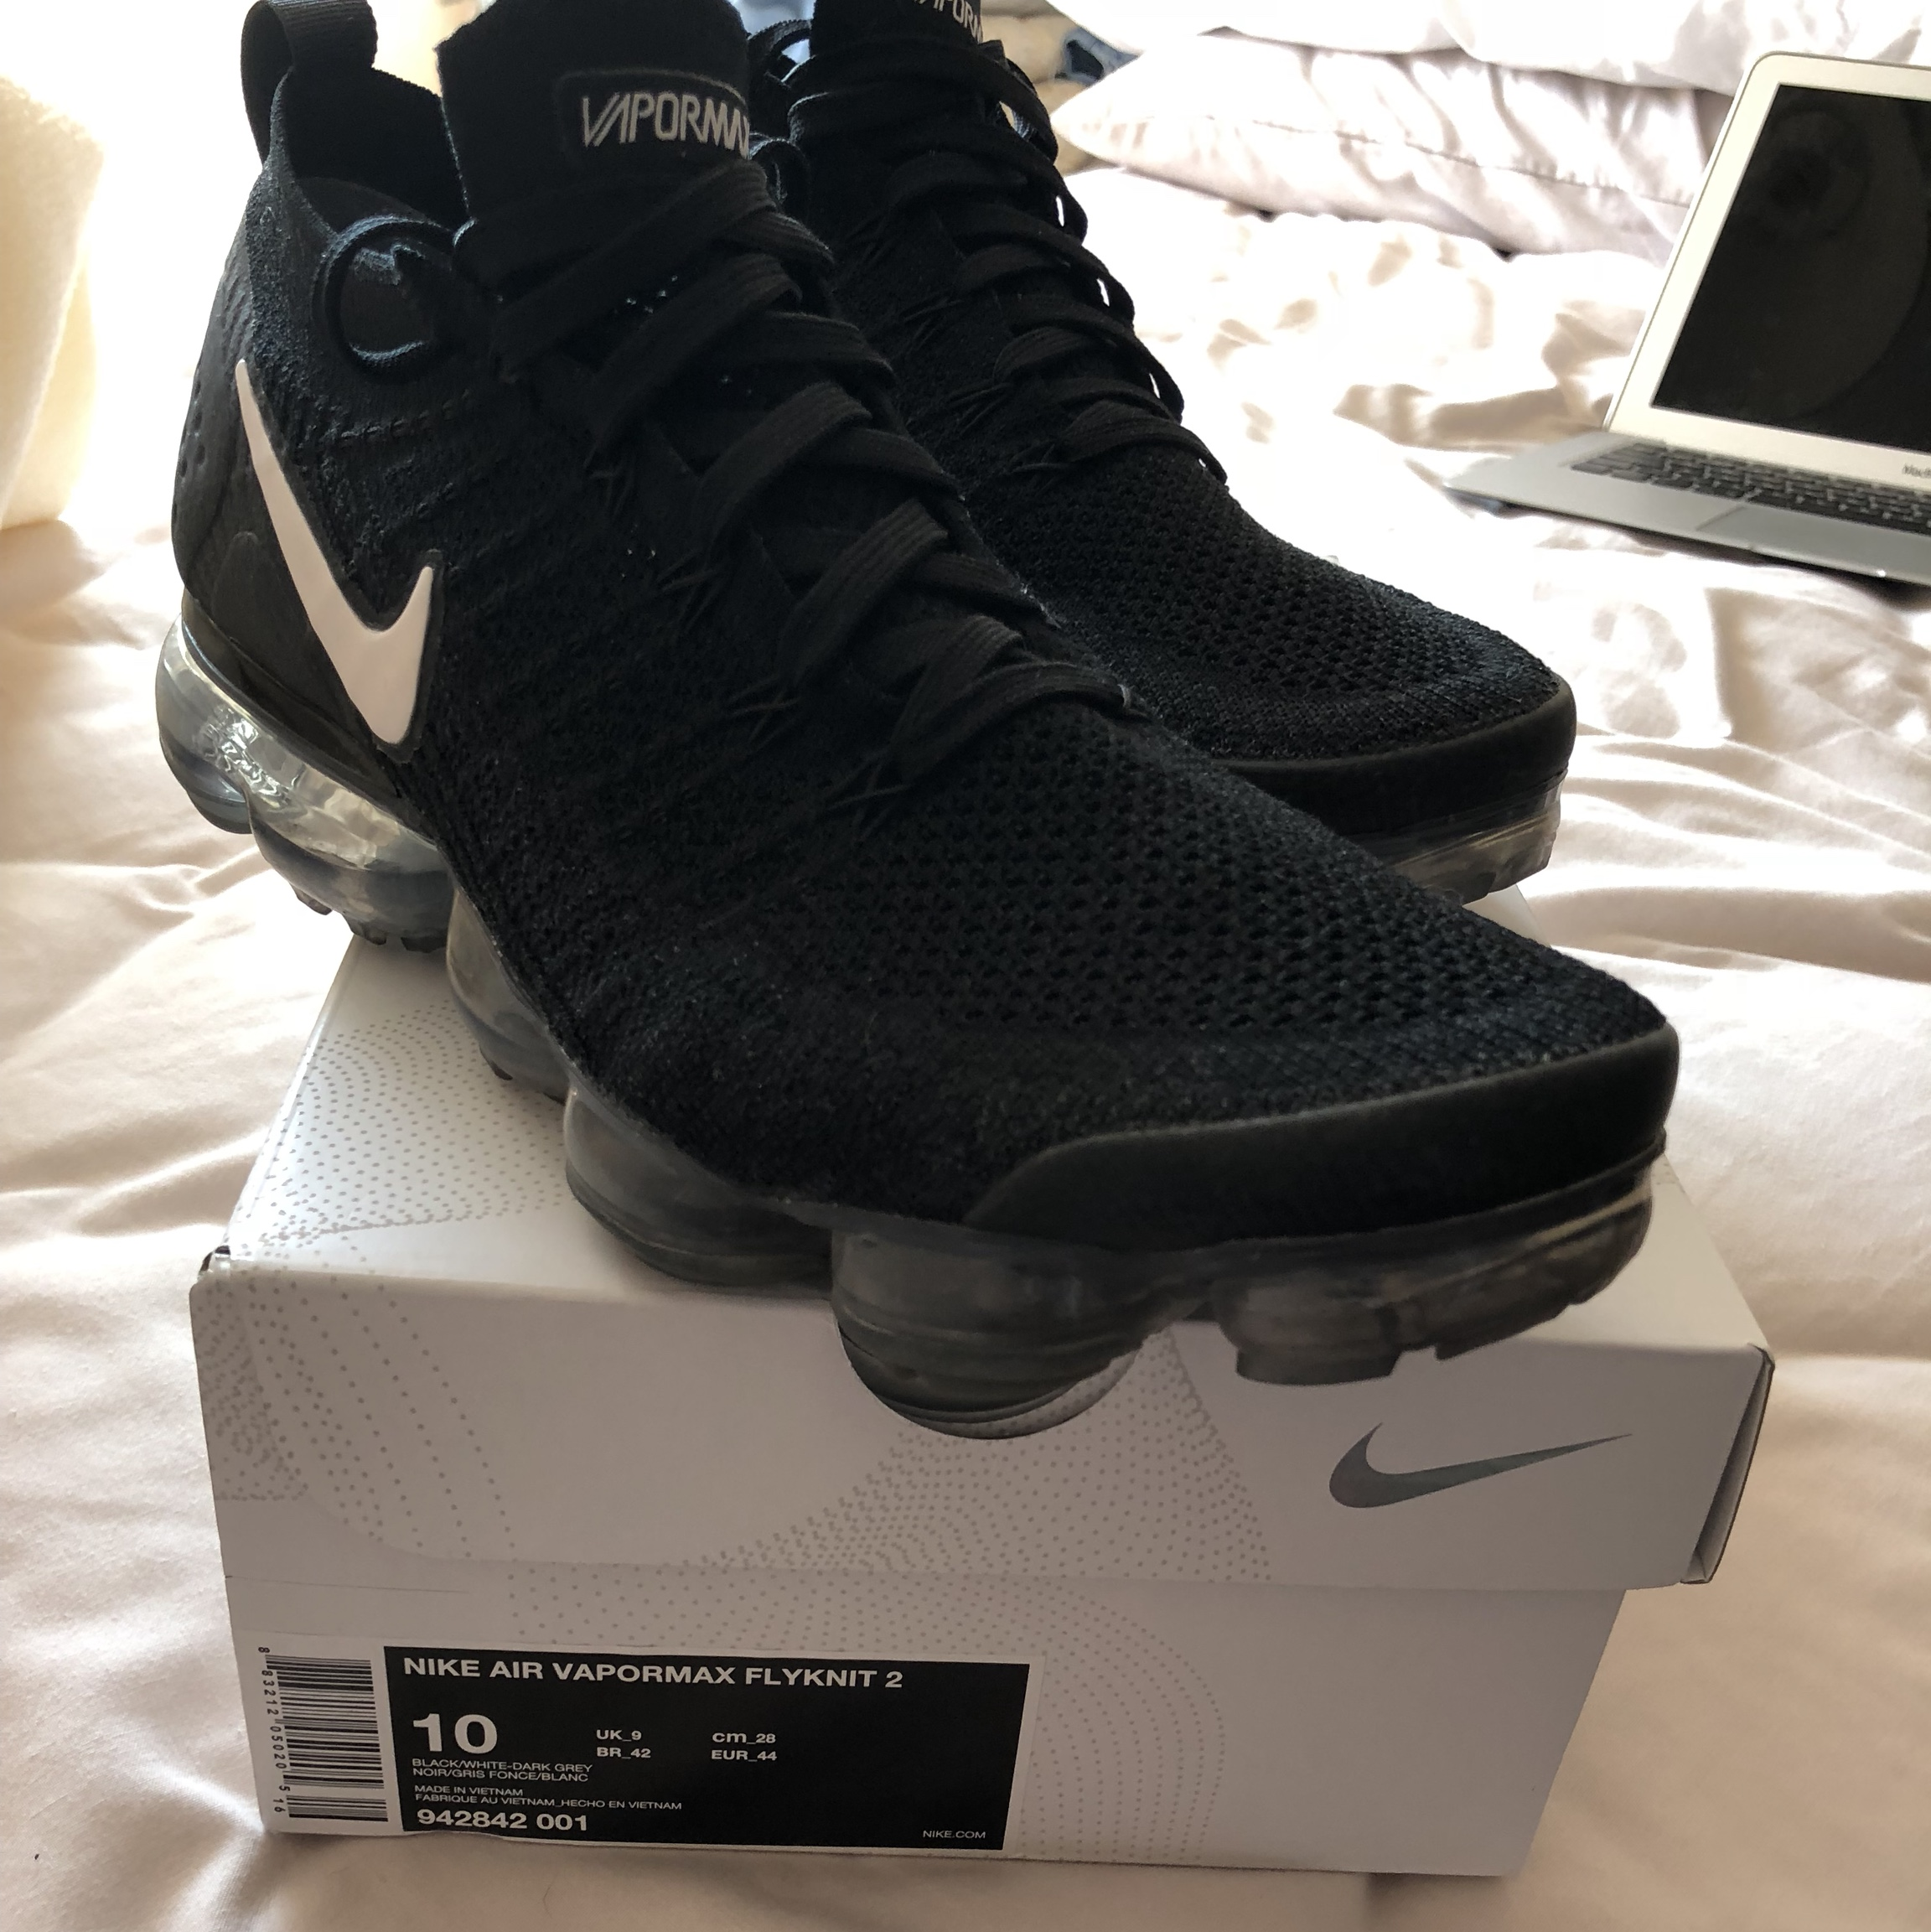 super popular 89a3e 0c734 NIKE air vapormax 2.0 flyknit Black, bought from... - Depop